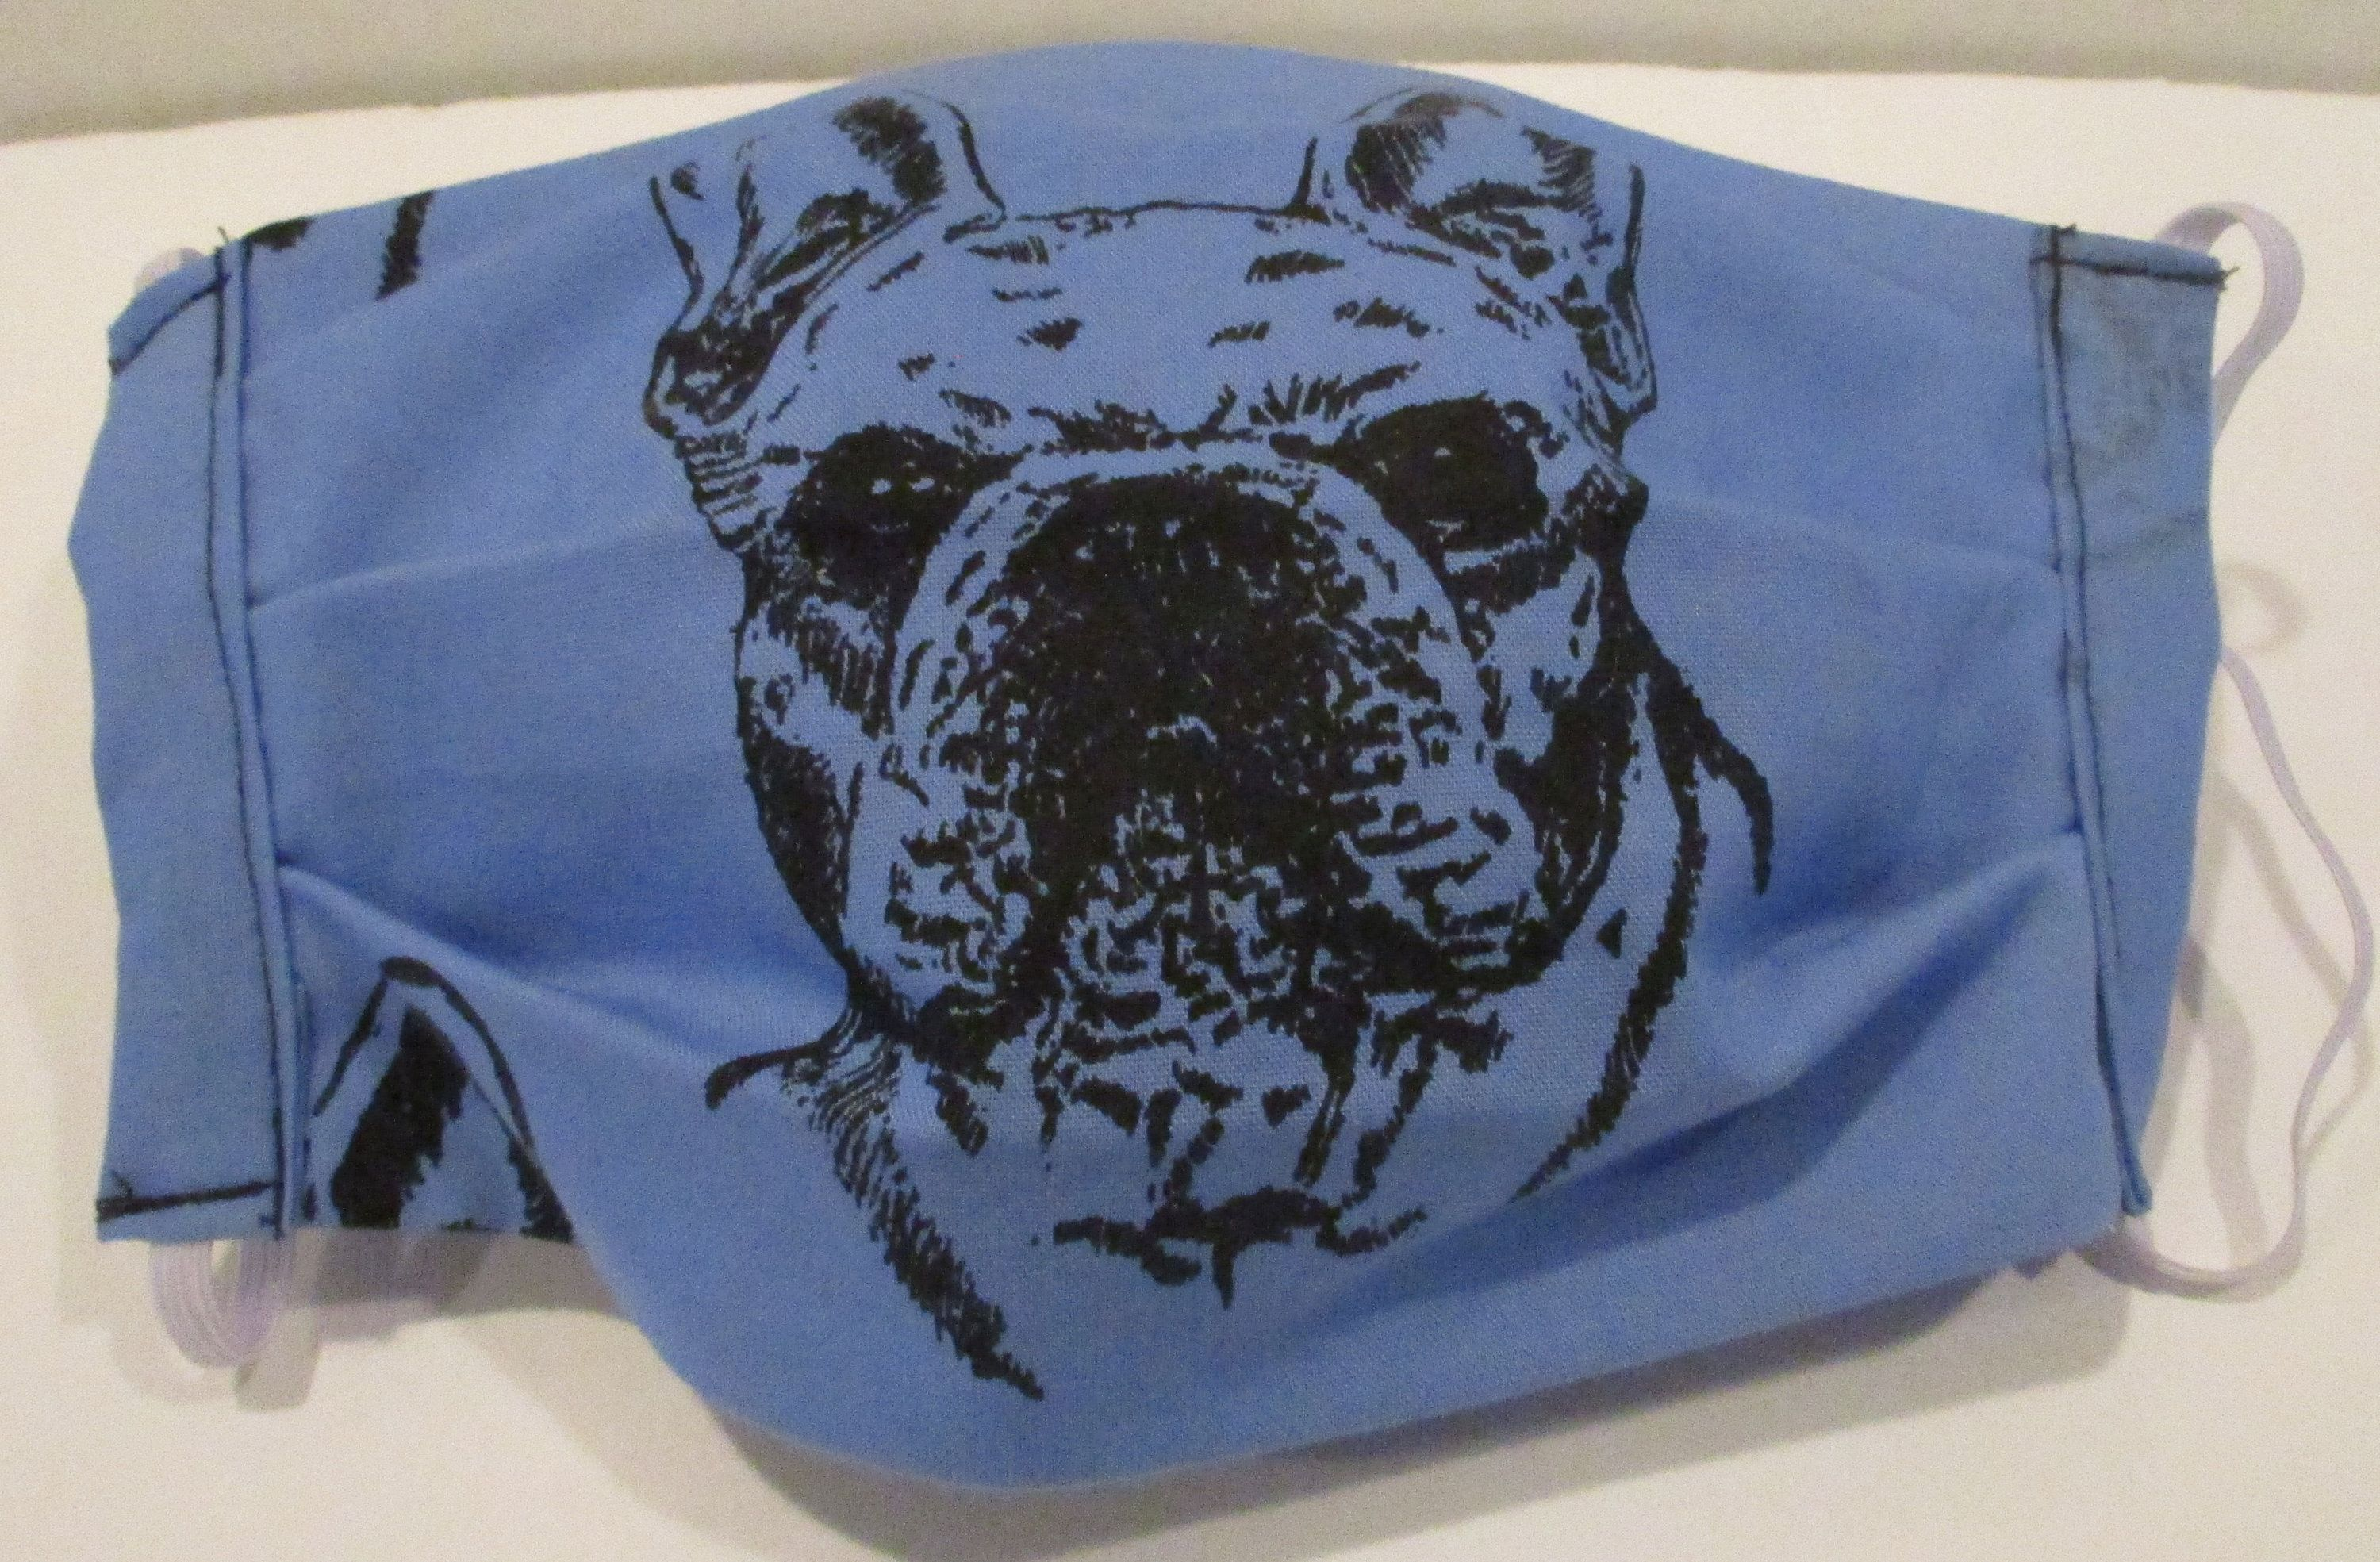 French Bulldog Face Mask Etsy In 2020 French Bulldog French Bulldog Pictures Bulldog